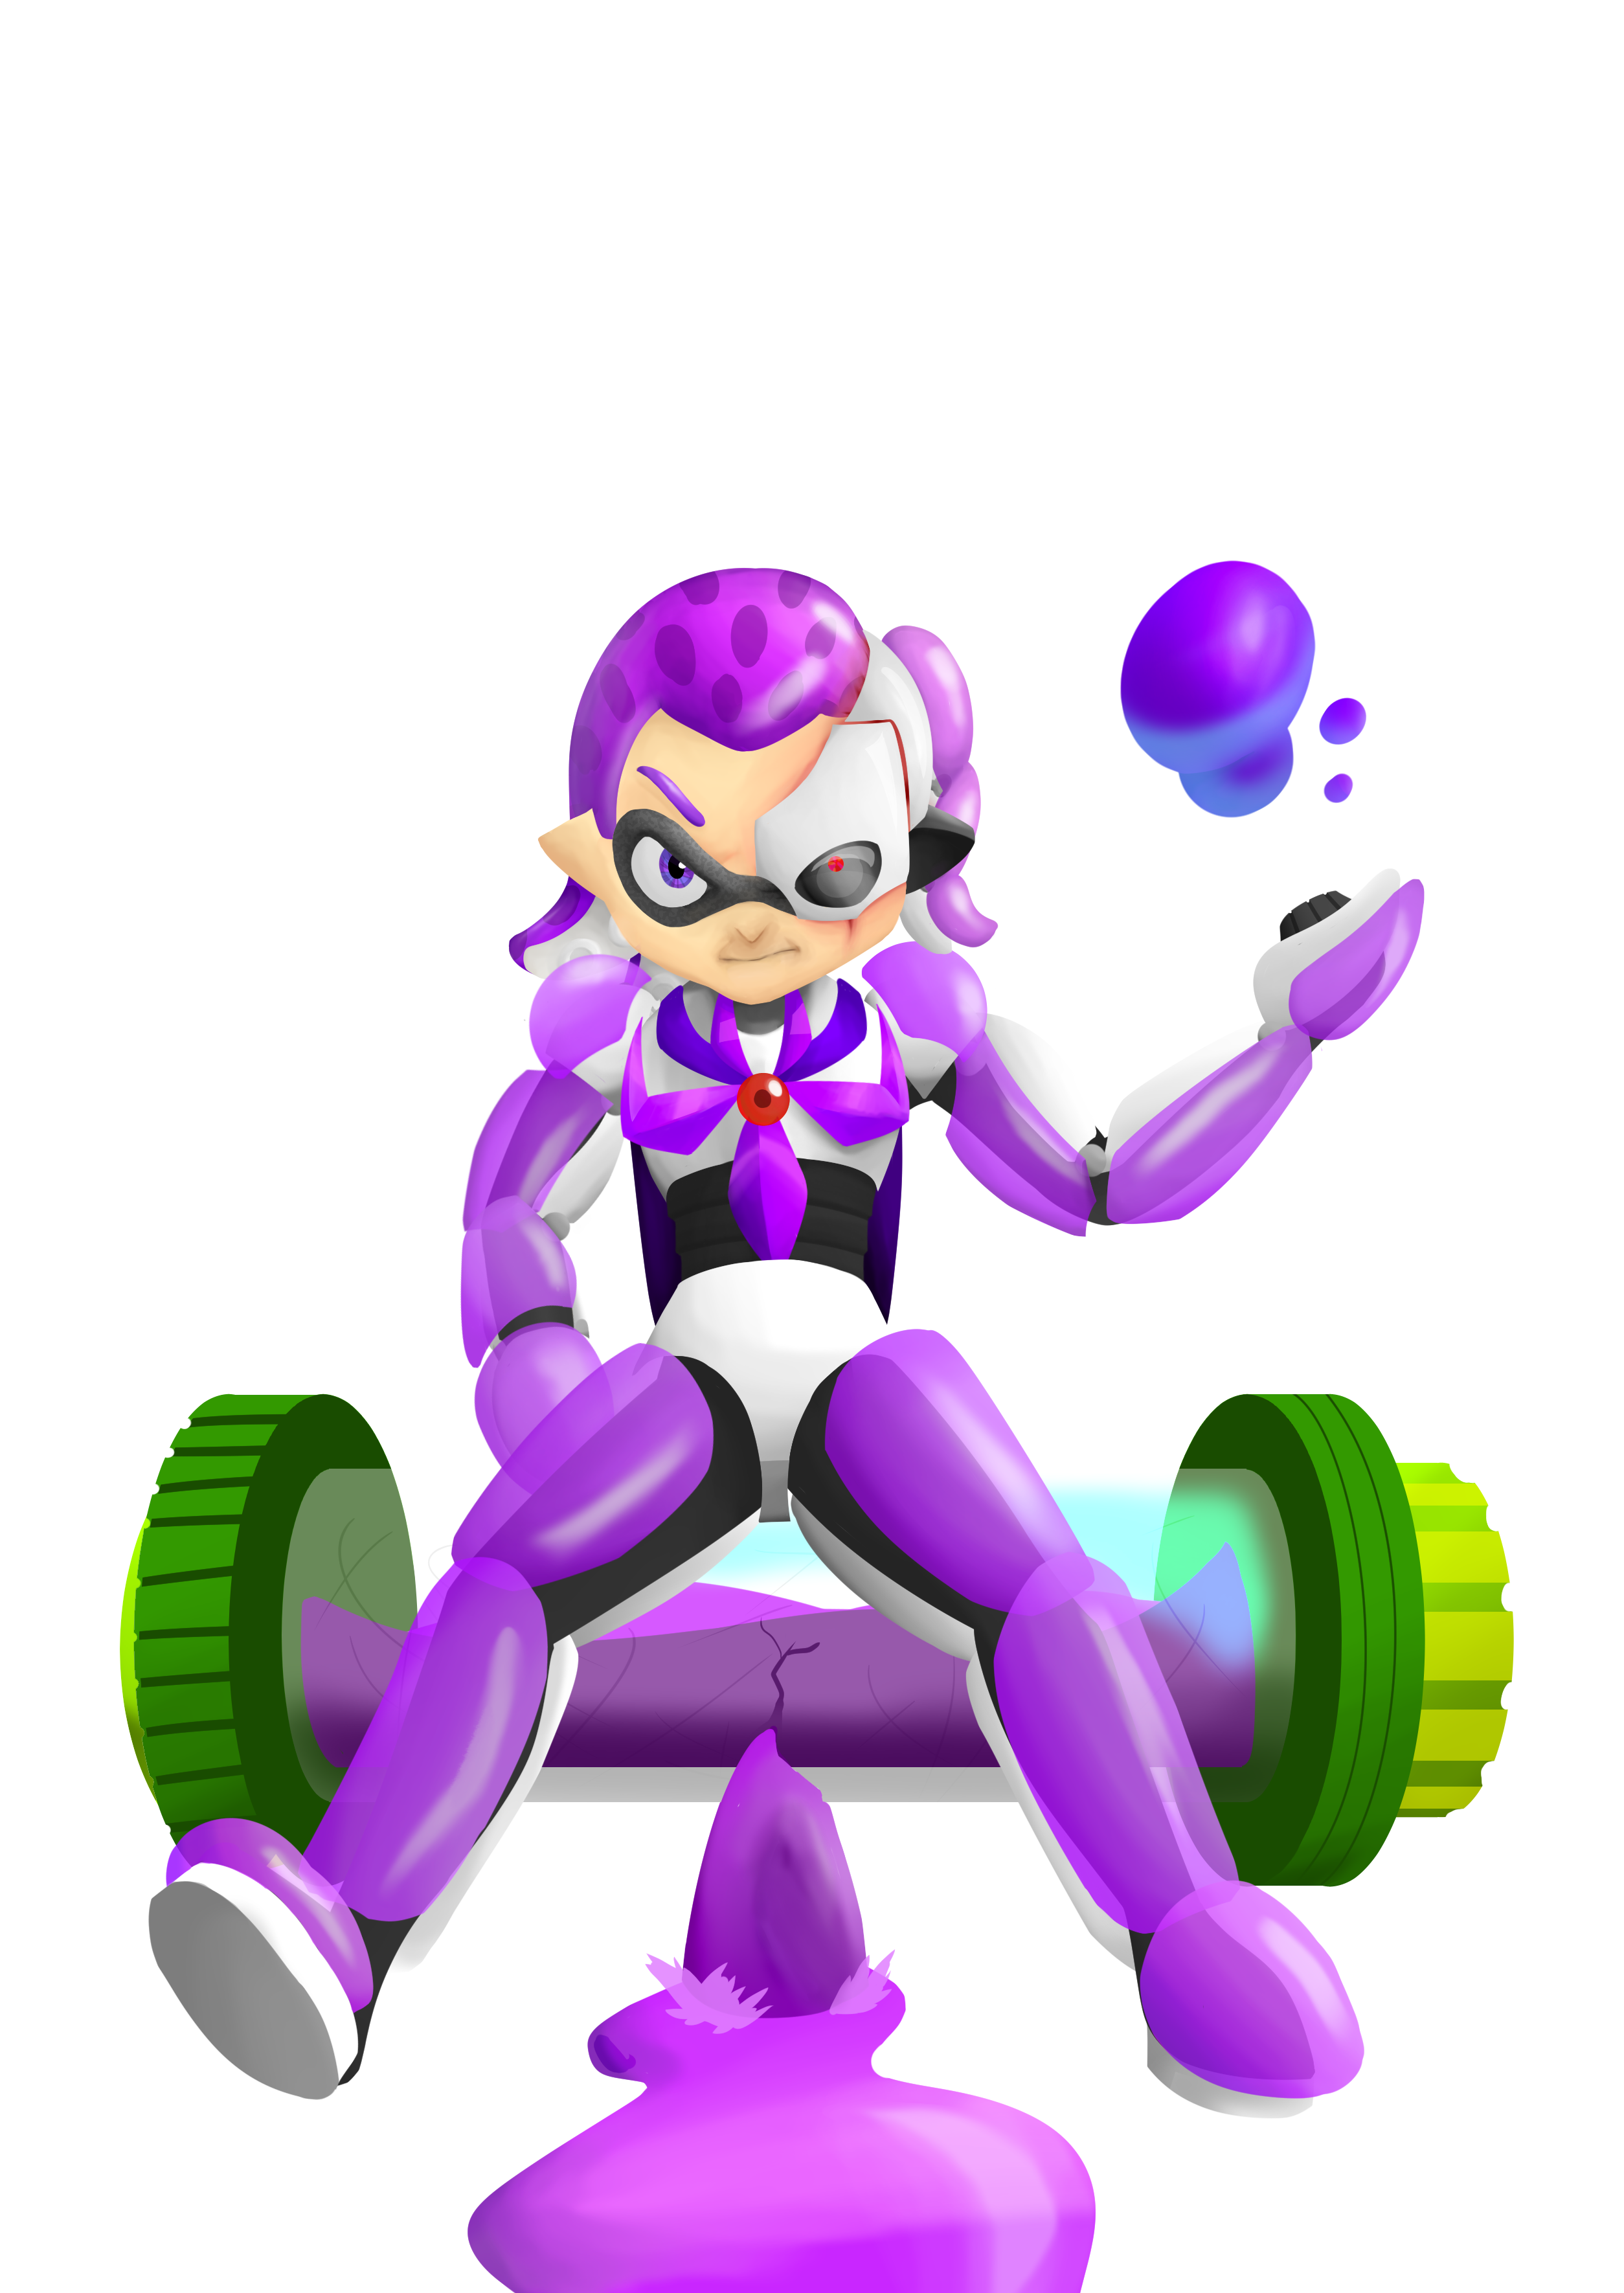 Character: Level 99 Squid Kid - Jazza's Challenge of the Month